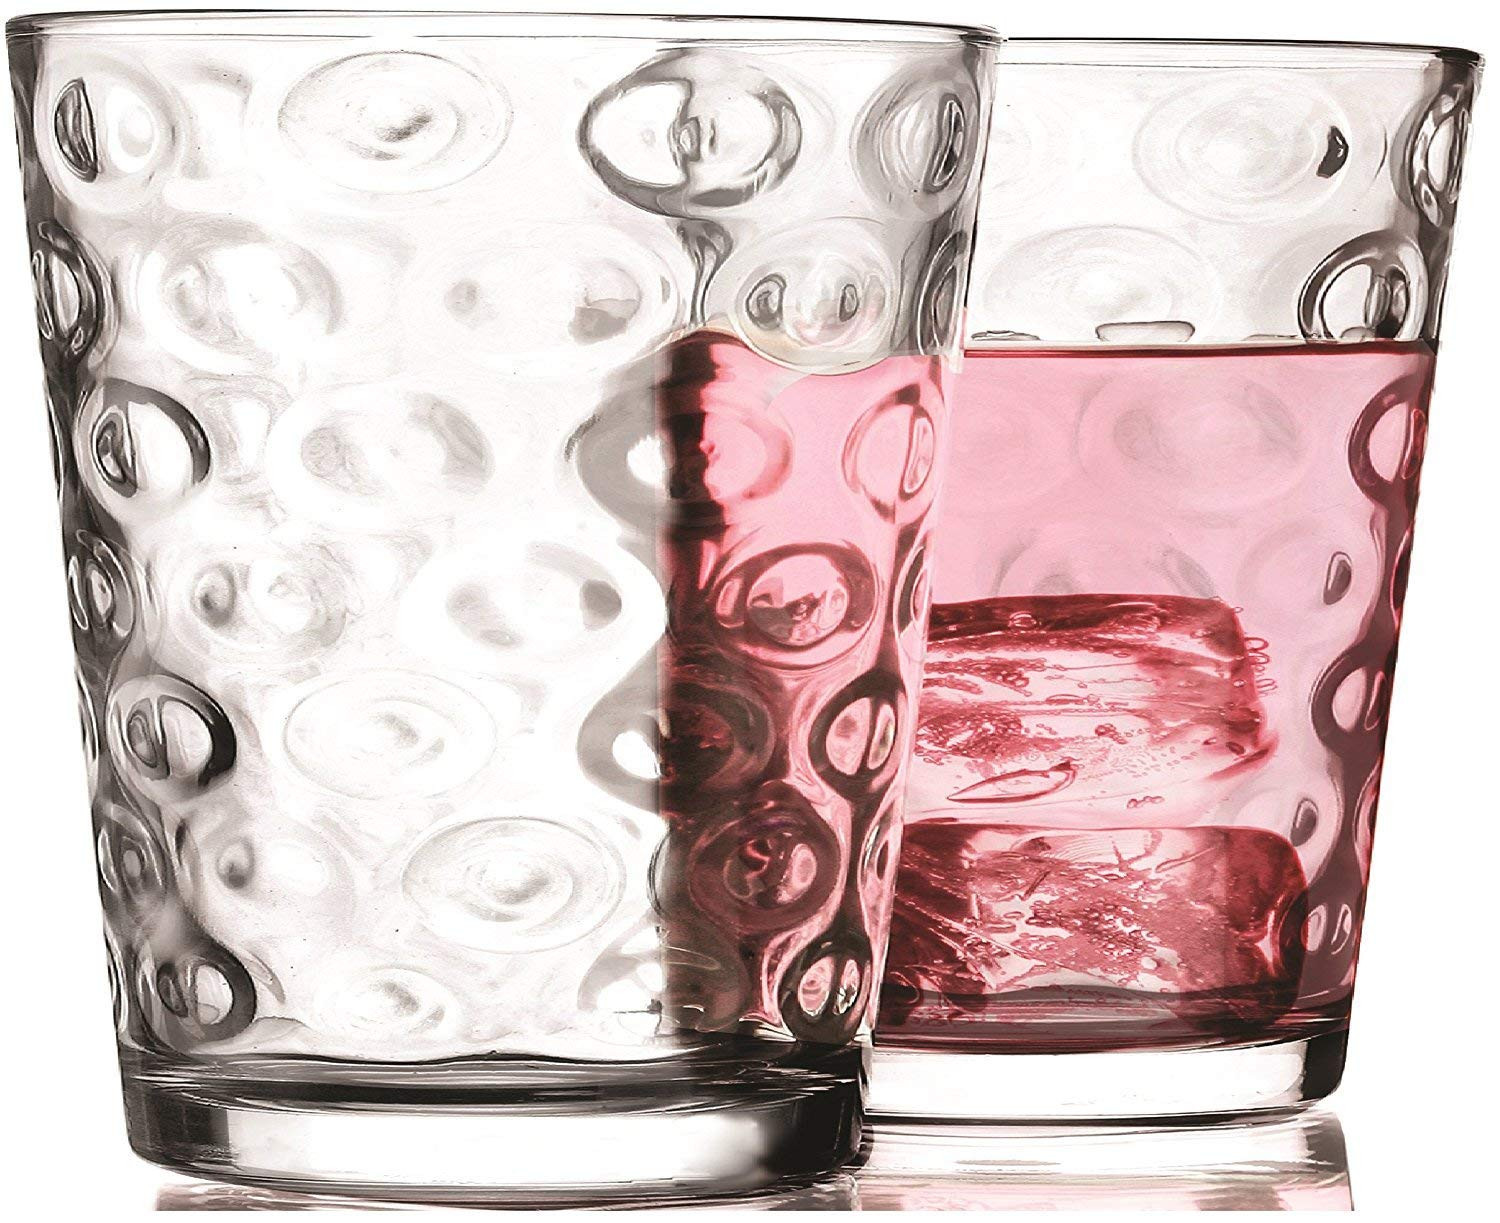 tall wide glass vase of amazon com circleware 44516 circles drinking glassware products pertaining to amazon com circleware 44516 circles drinking glassware products clear mixed drinkware sets